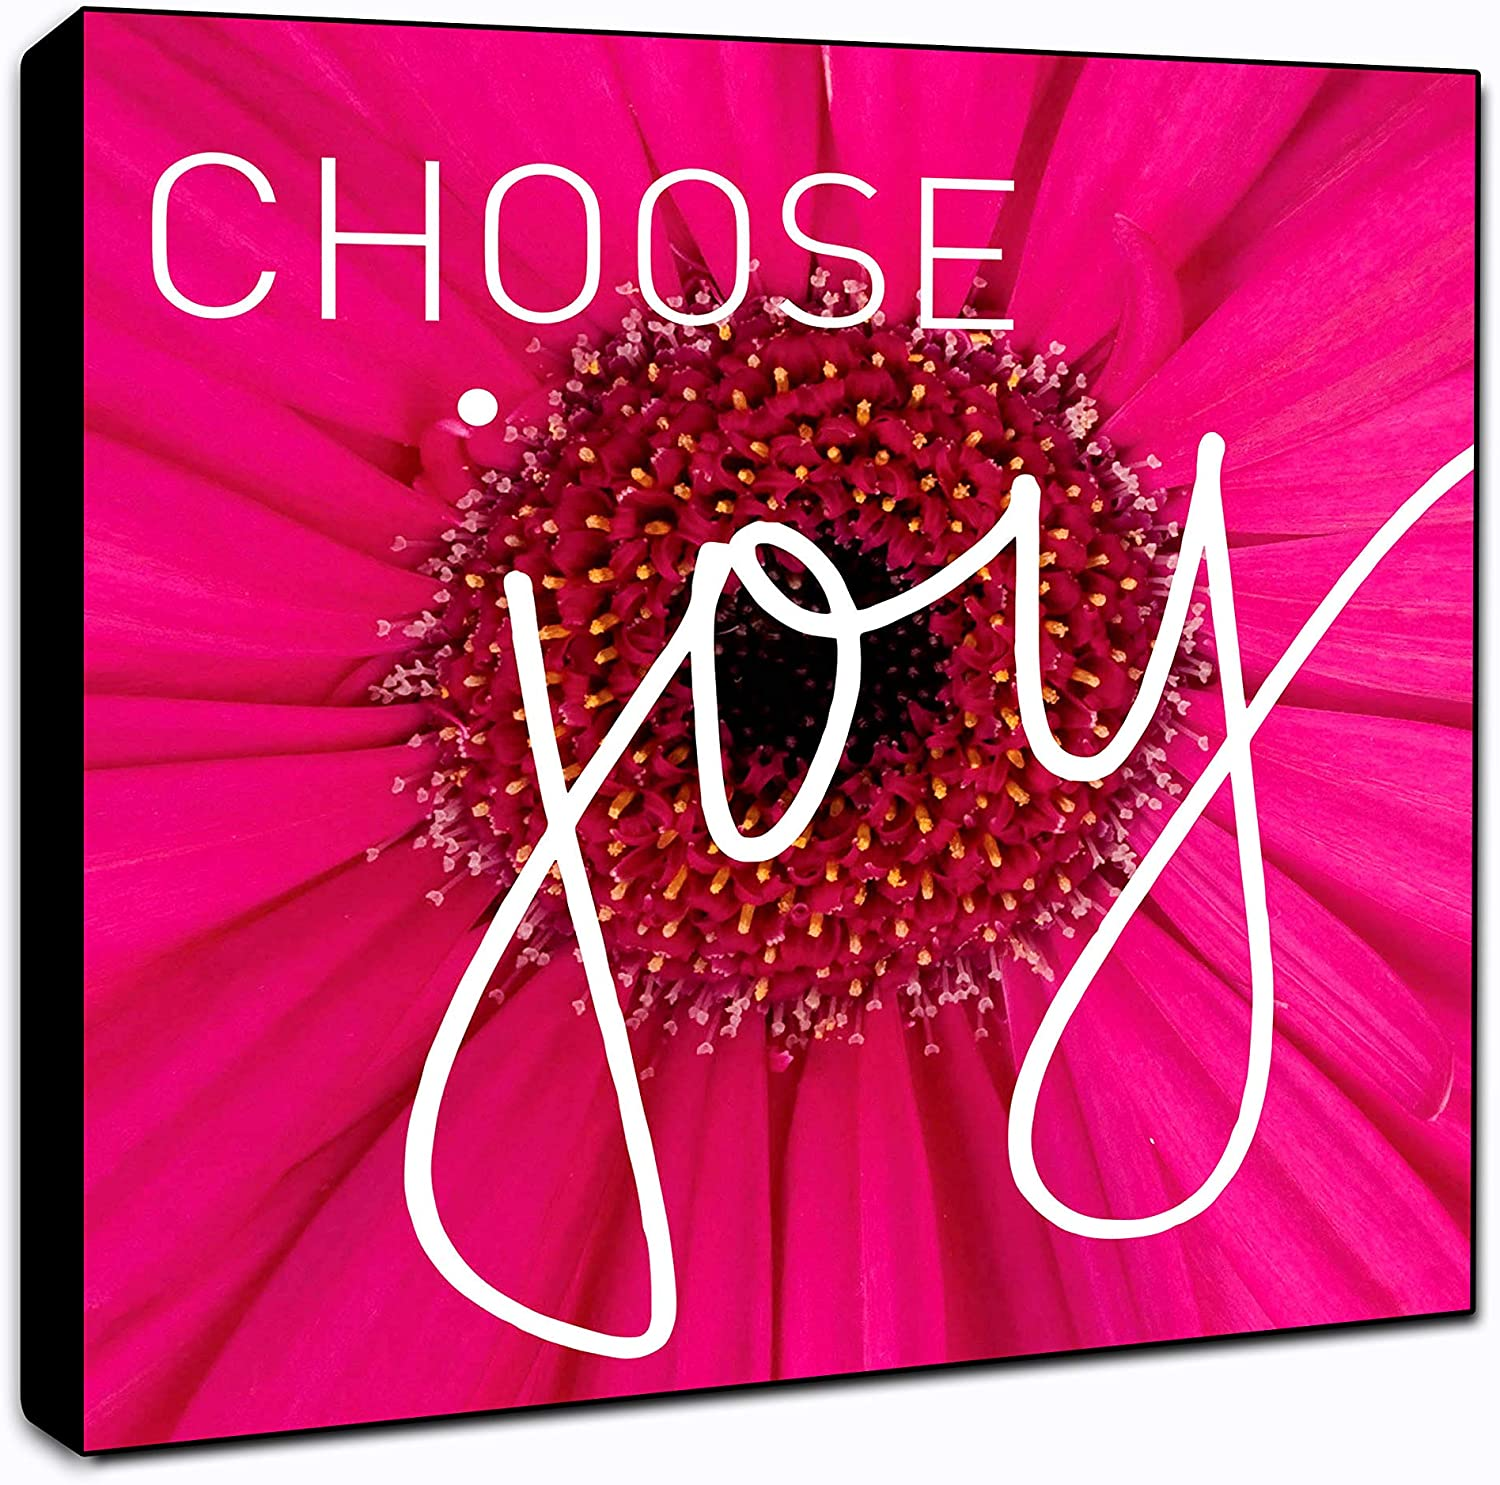 "LACOFFIO Choose Joy Motivational Wall Art Decor Plaque 6"" x 6"" Housewarming Gift Idea"